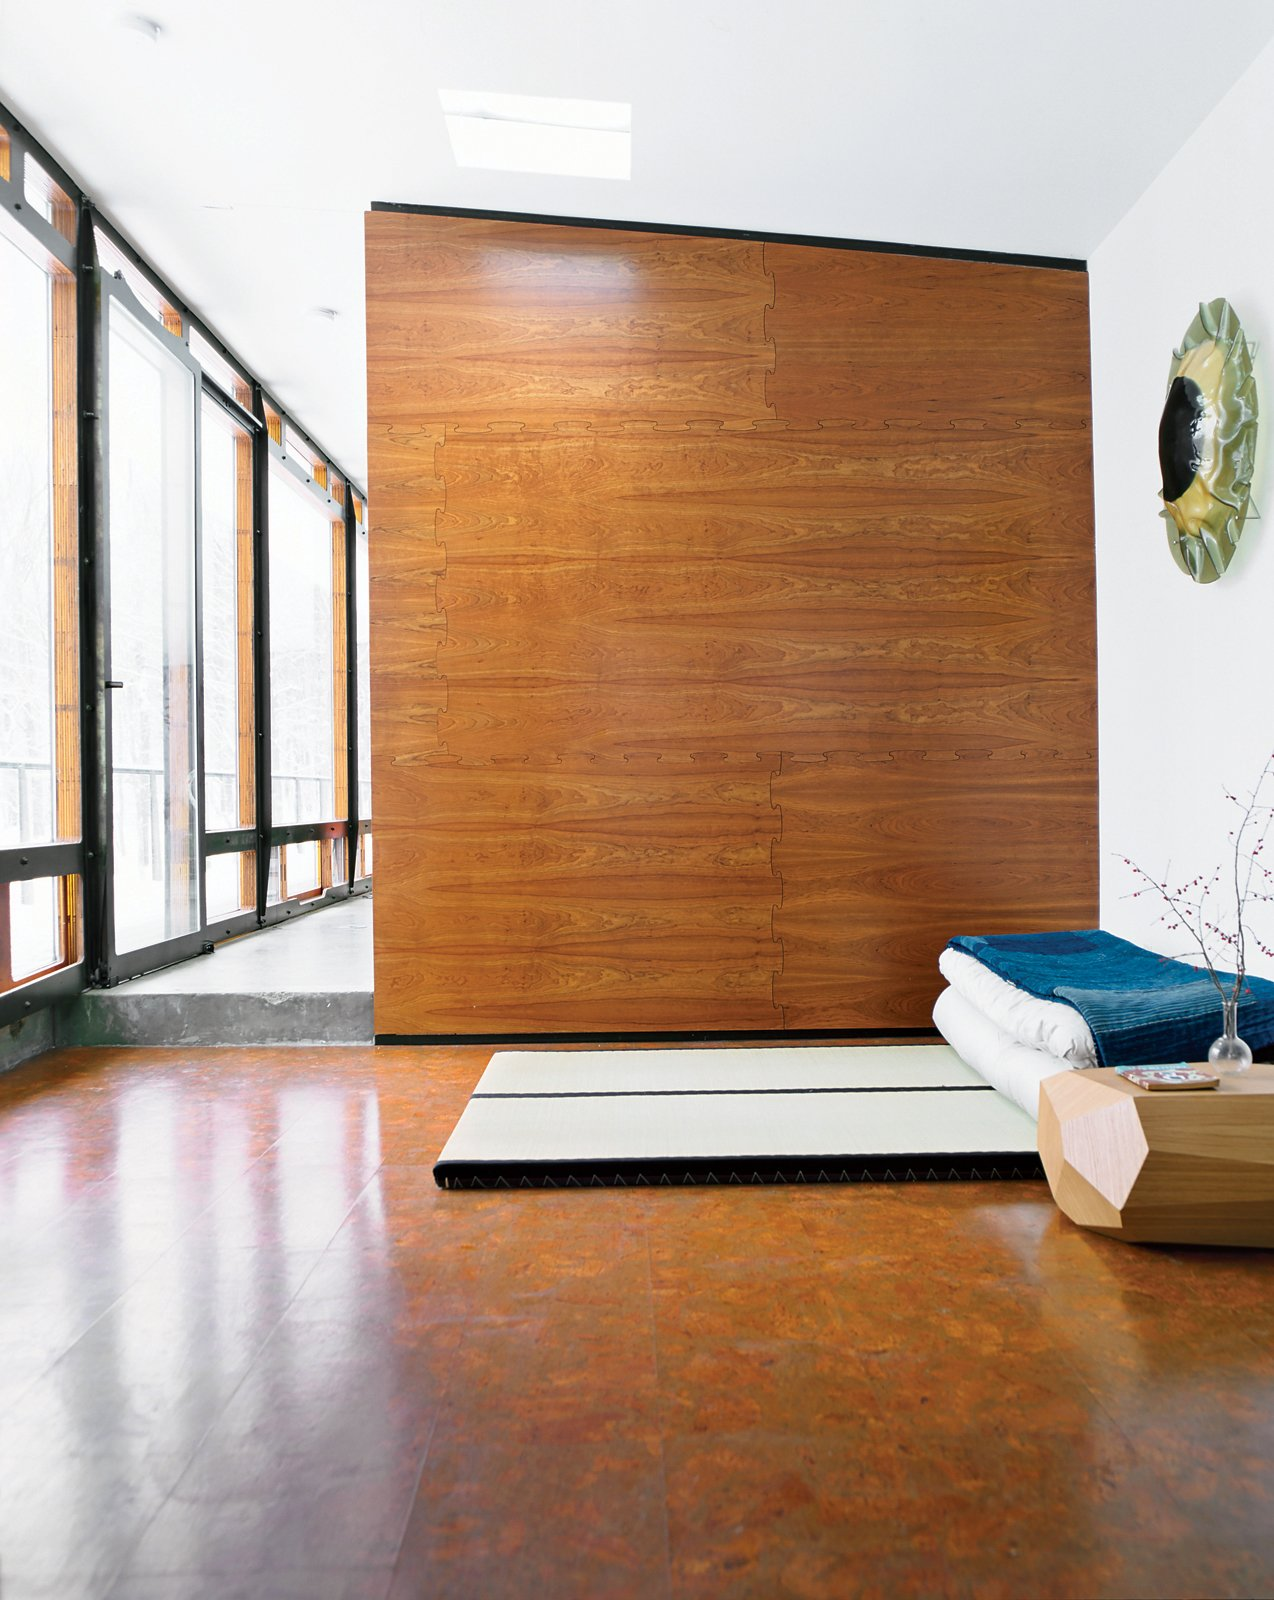 """For one of two sleeping areas flanking the main living space, Wooten placed tatami from Miya Shoji on the cork floor. """"With the radiant heating system, it's fantastic to be in this glass box looking out at a blizzard, walking barefoot on the warm floor,"""" he says. """"Tatami are not for everyone, but they are really comfy to me. Before we built the house, I stayed at a traditional bed-and-breakfast in Kyoto, Japan, and had one of the best nights of sleep ever, so I decided I wanted to do that style of bed. On top is a 150-year-old Japanese denim patchwork quilt I bought from a friend who took me to Japan. I've always admired Japanese design—Noguchi is one of my favorites—so I was inspired to have that spirit in the house."""" miyashoji.com  Photo 11 of 12 in A Hybrid Prefab Home in Upstate New York"""